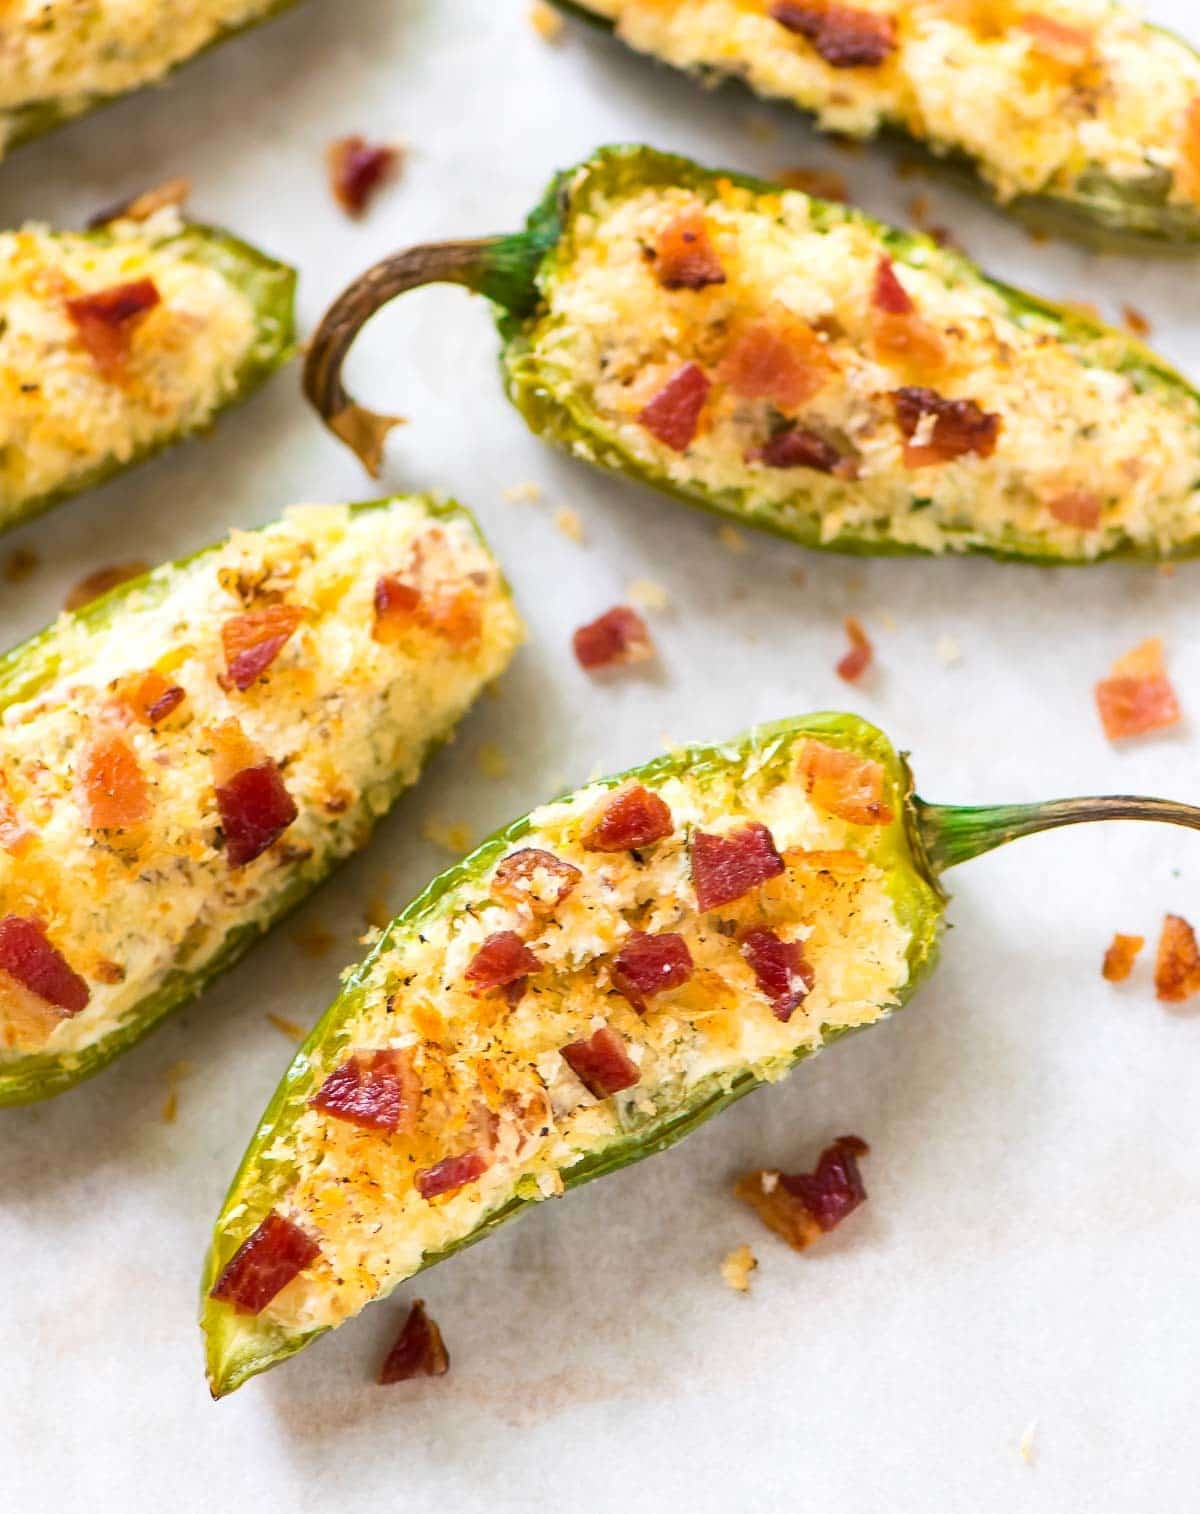 Easy jalapeno poppers recipe with bacon and cream cheese